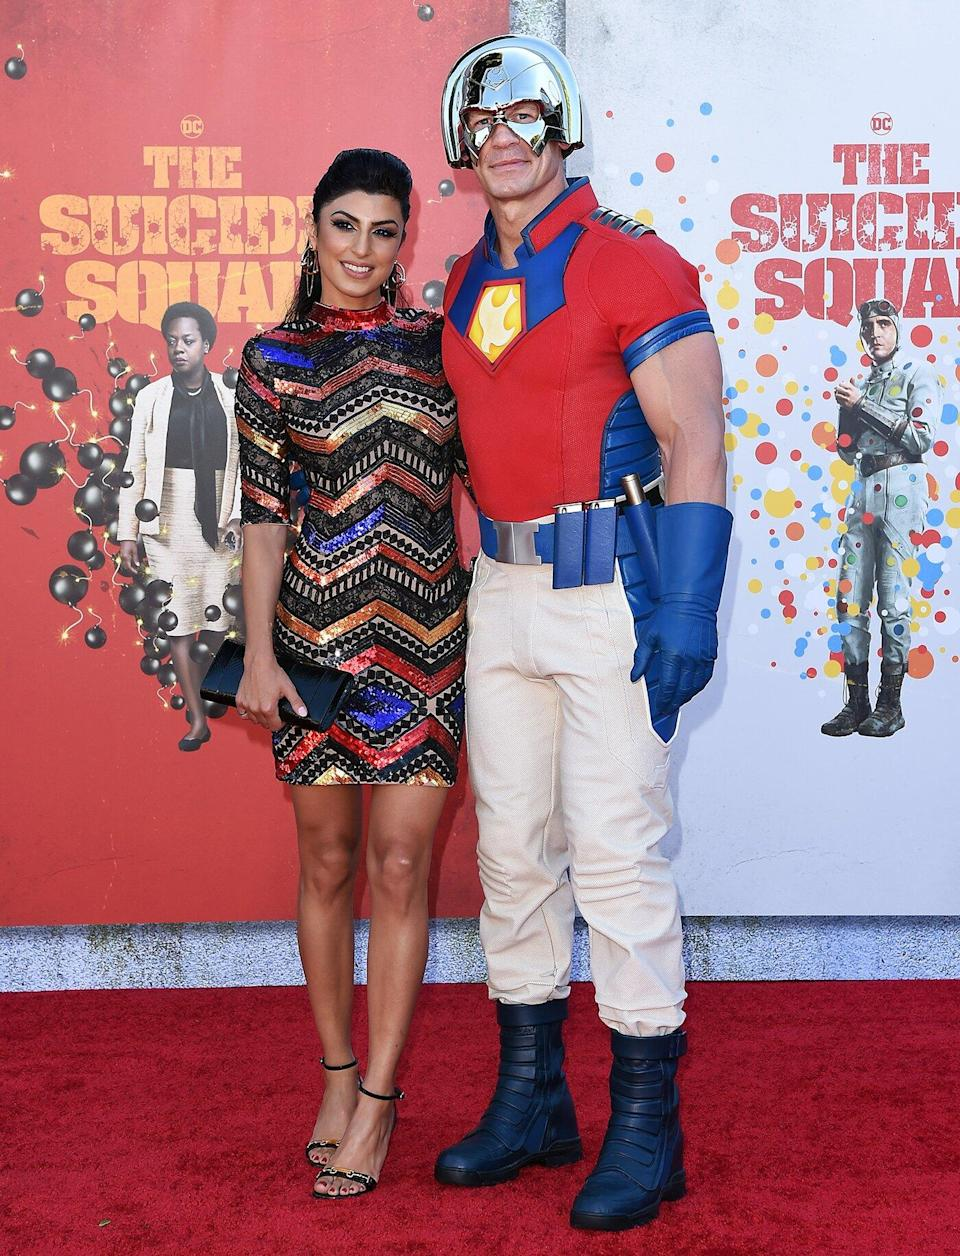 """Shay Shariatzadeh and John Cena attend Warner Bros. Premiere of """"The Suicide Squad"""" at The Landmark Westwood on August 02, 2021 in Los Angeles, California."""